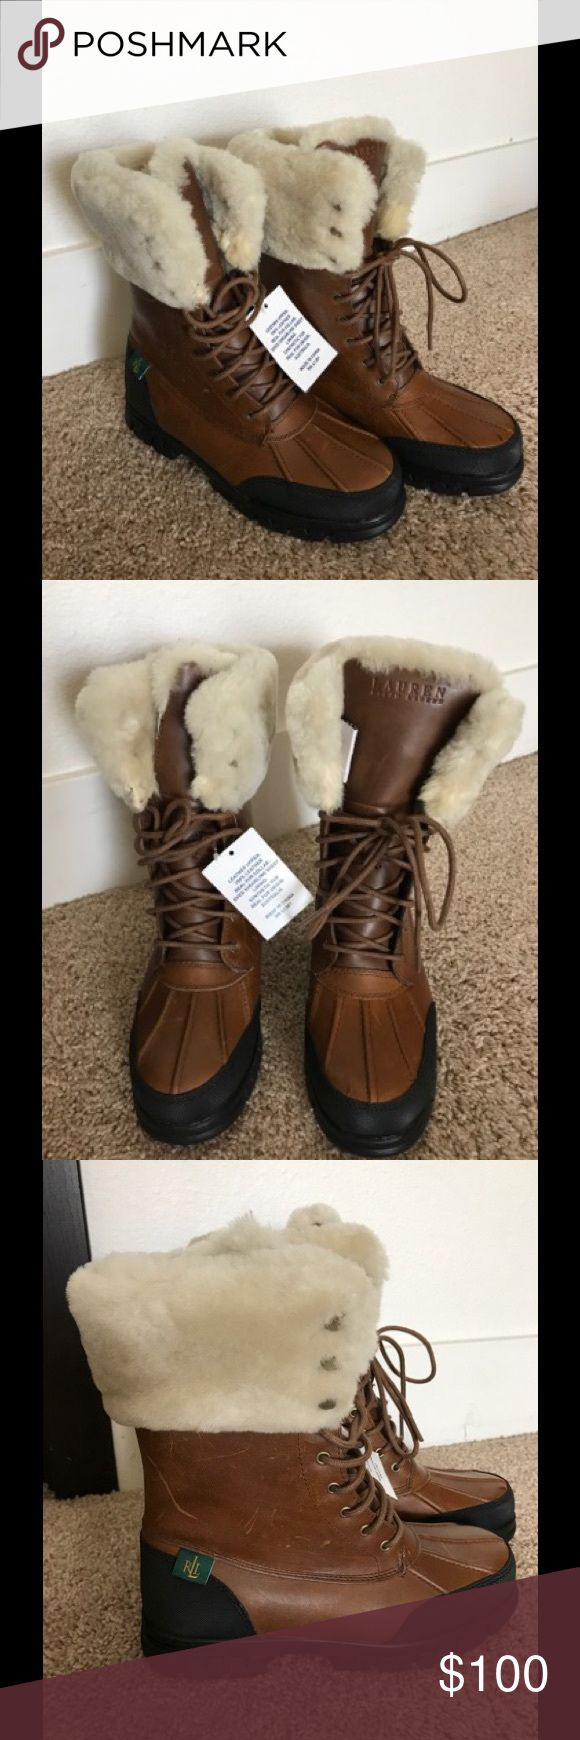 LAUREN Ralph Lauren Quinta Tan Leather Boot BRAND NEW IN BOX!! Lauren Ralph Lauren Quinta Tan Leather Winter Boot, Mid Calf with Laces, Smooth Leather upper, Dyed Genuine Sheep Shearling and Man Made Lining, Rubber Sole, Imported, Heel Height 11/4 in, Weight 1 lb 7 oz Lauren Ralph Lauren Shoes Winter & Rain Boots